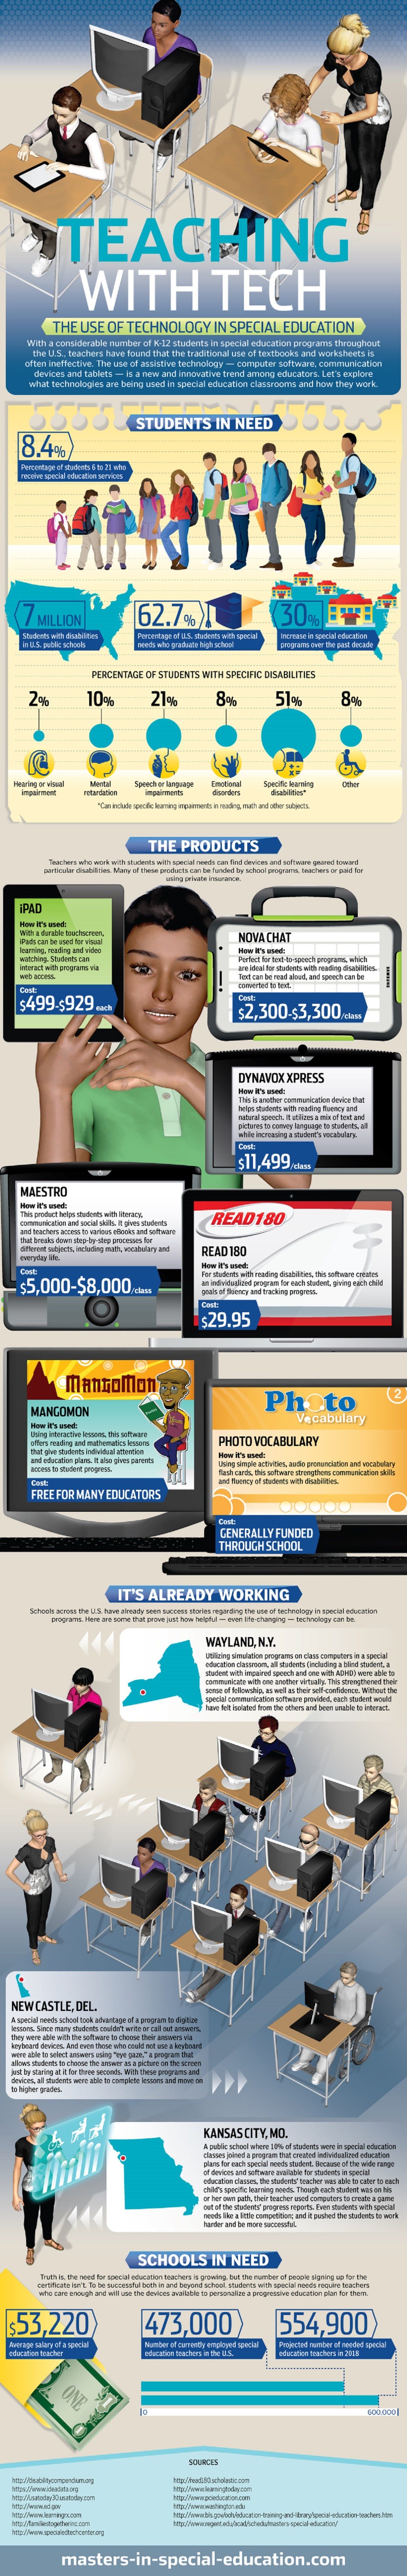 teaching-with-tech-the-use-of-technology-in-special-education-infographic